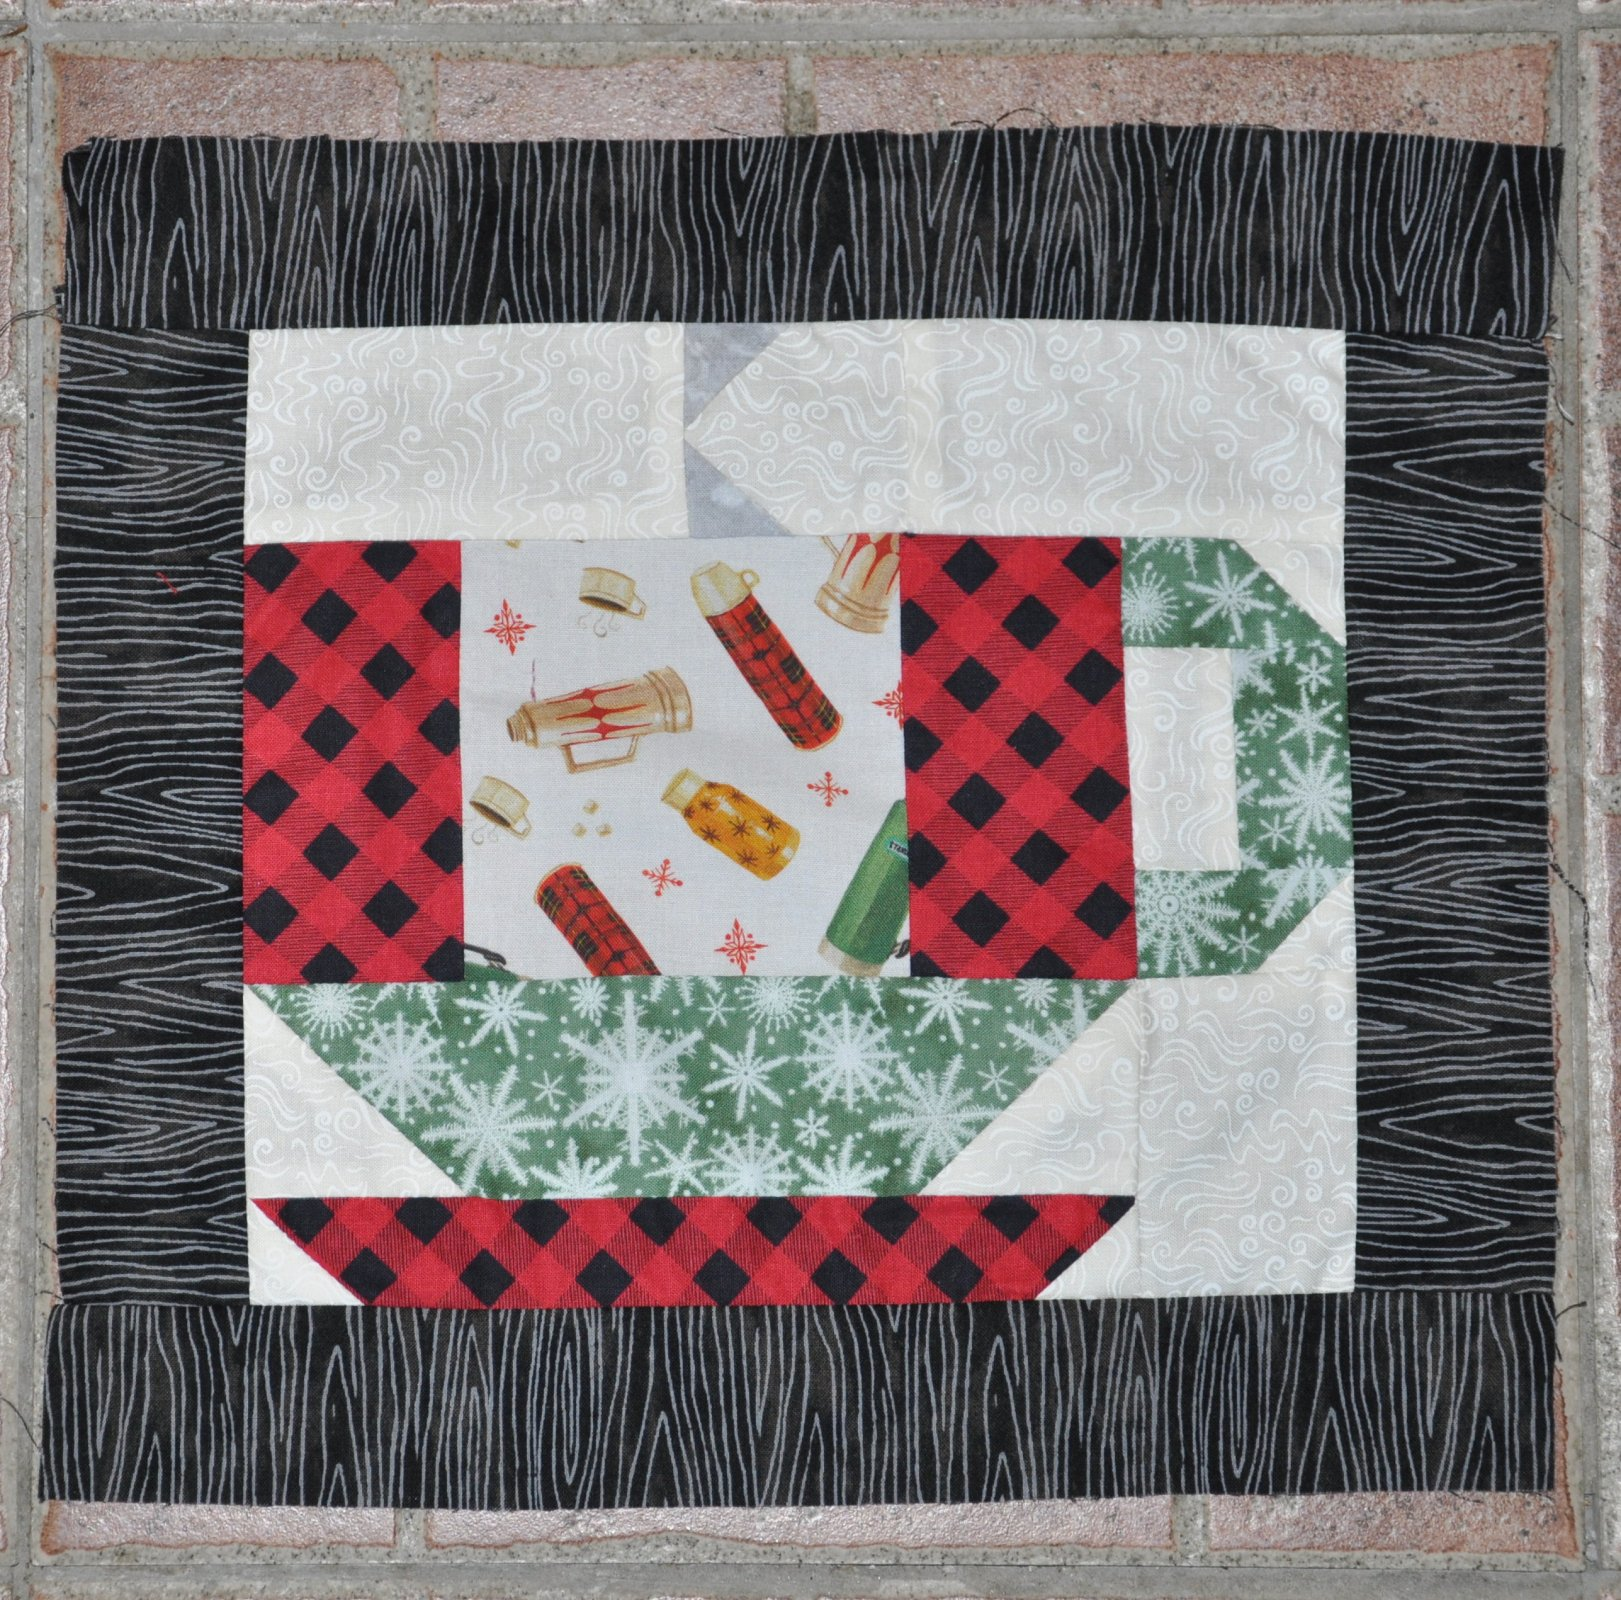 2019 Mystery Block of the Month - January